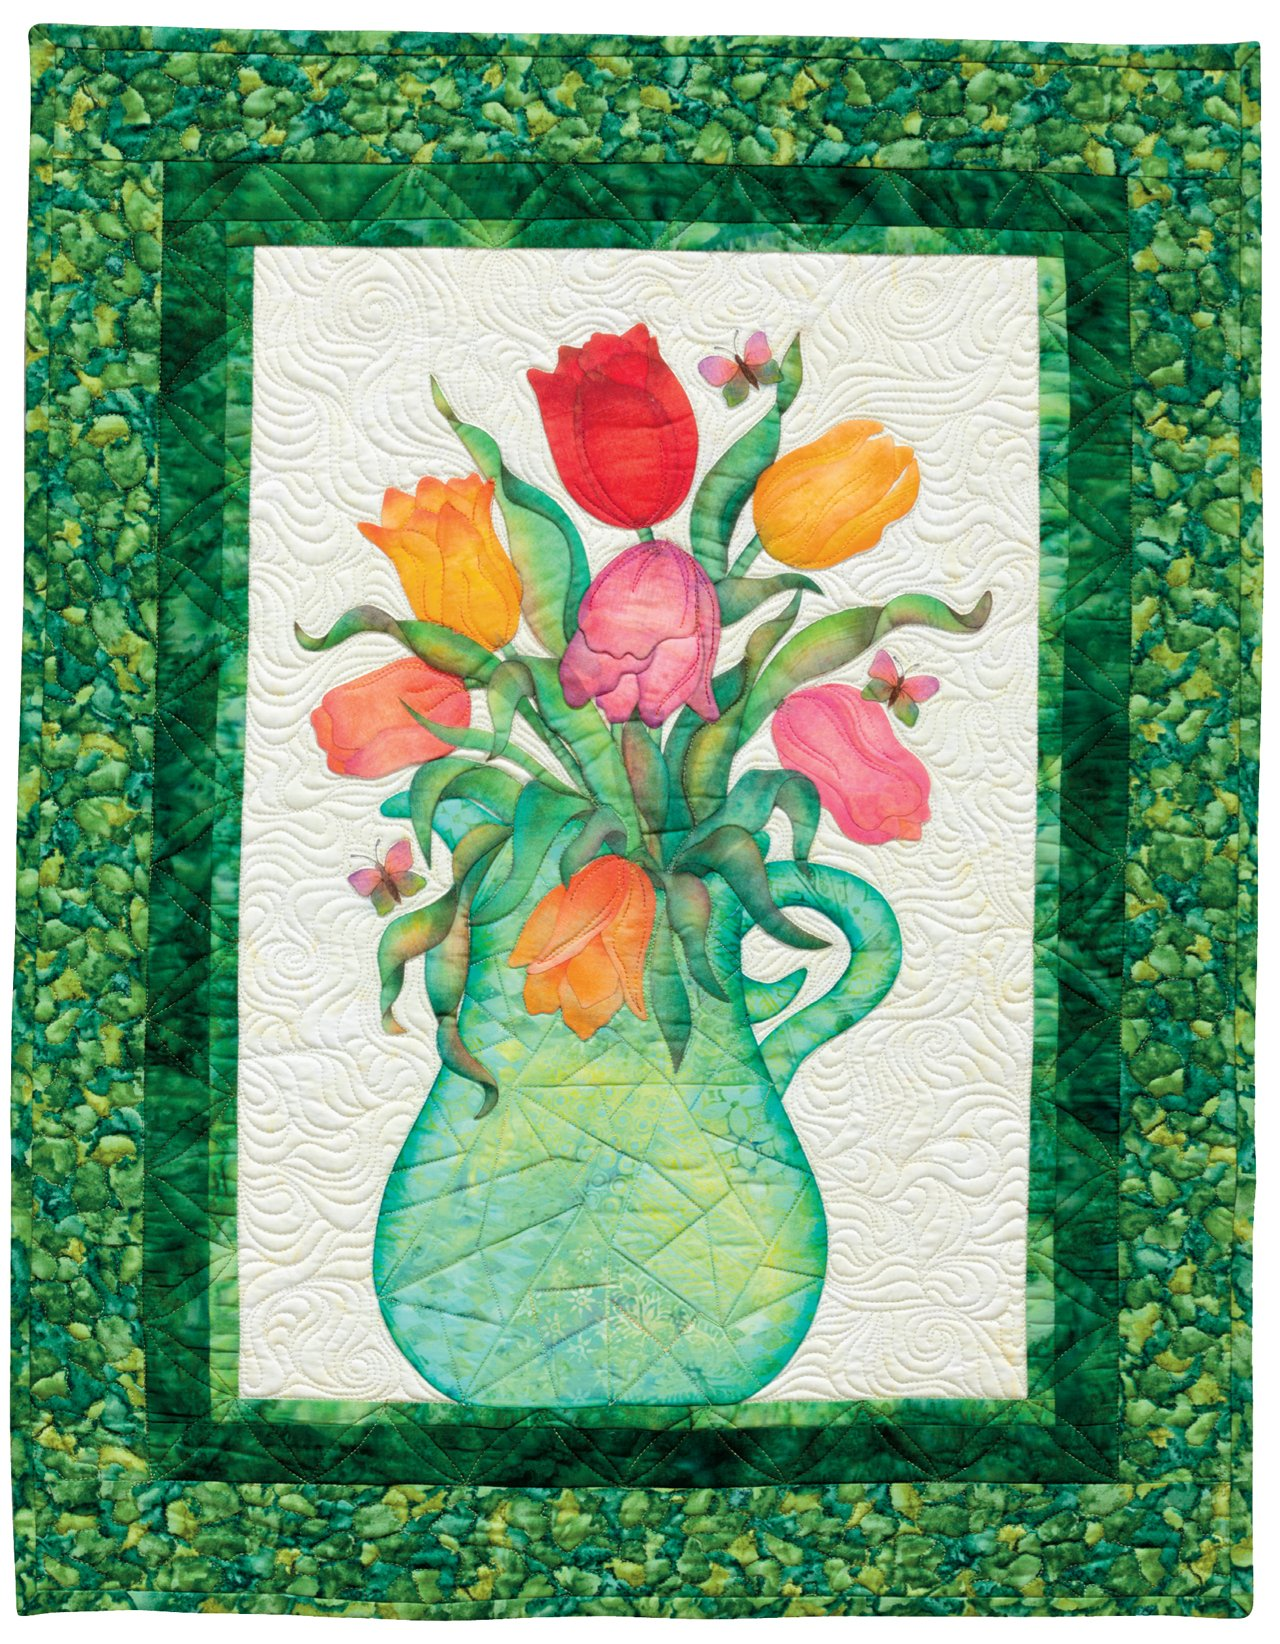 Creative Quilts from Your Crayon Box: Melt-n-Blend Meets Fusible Applique by That Patchwork Place (Image #6)